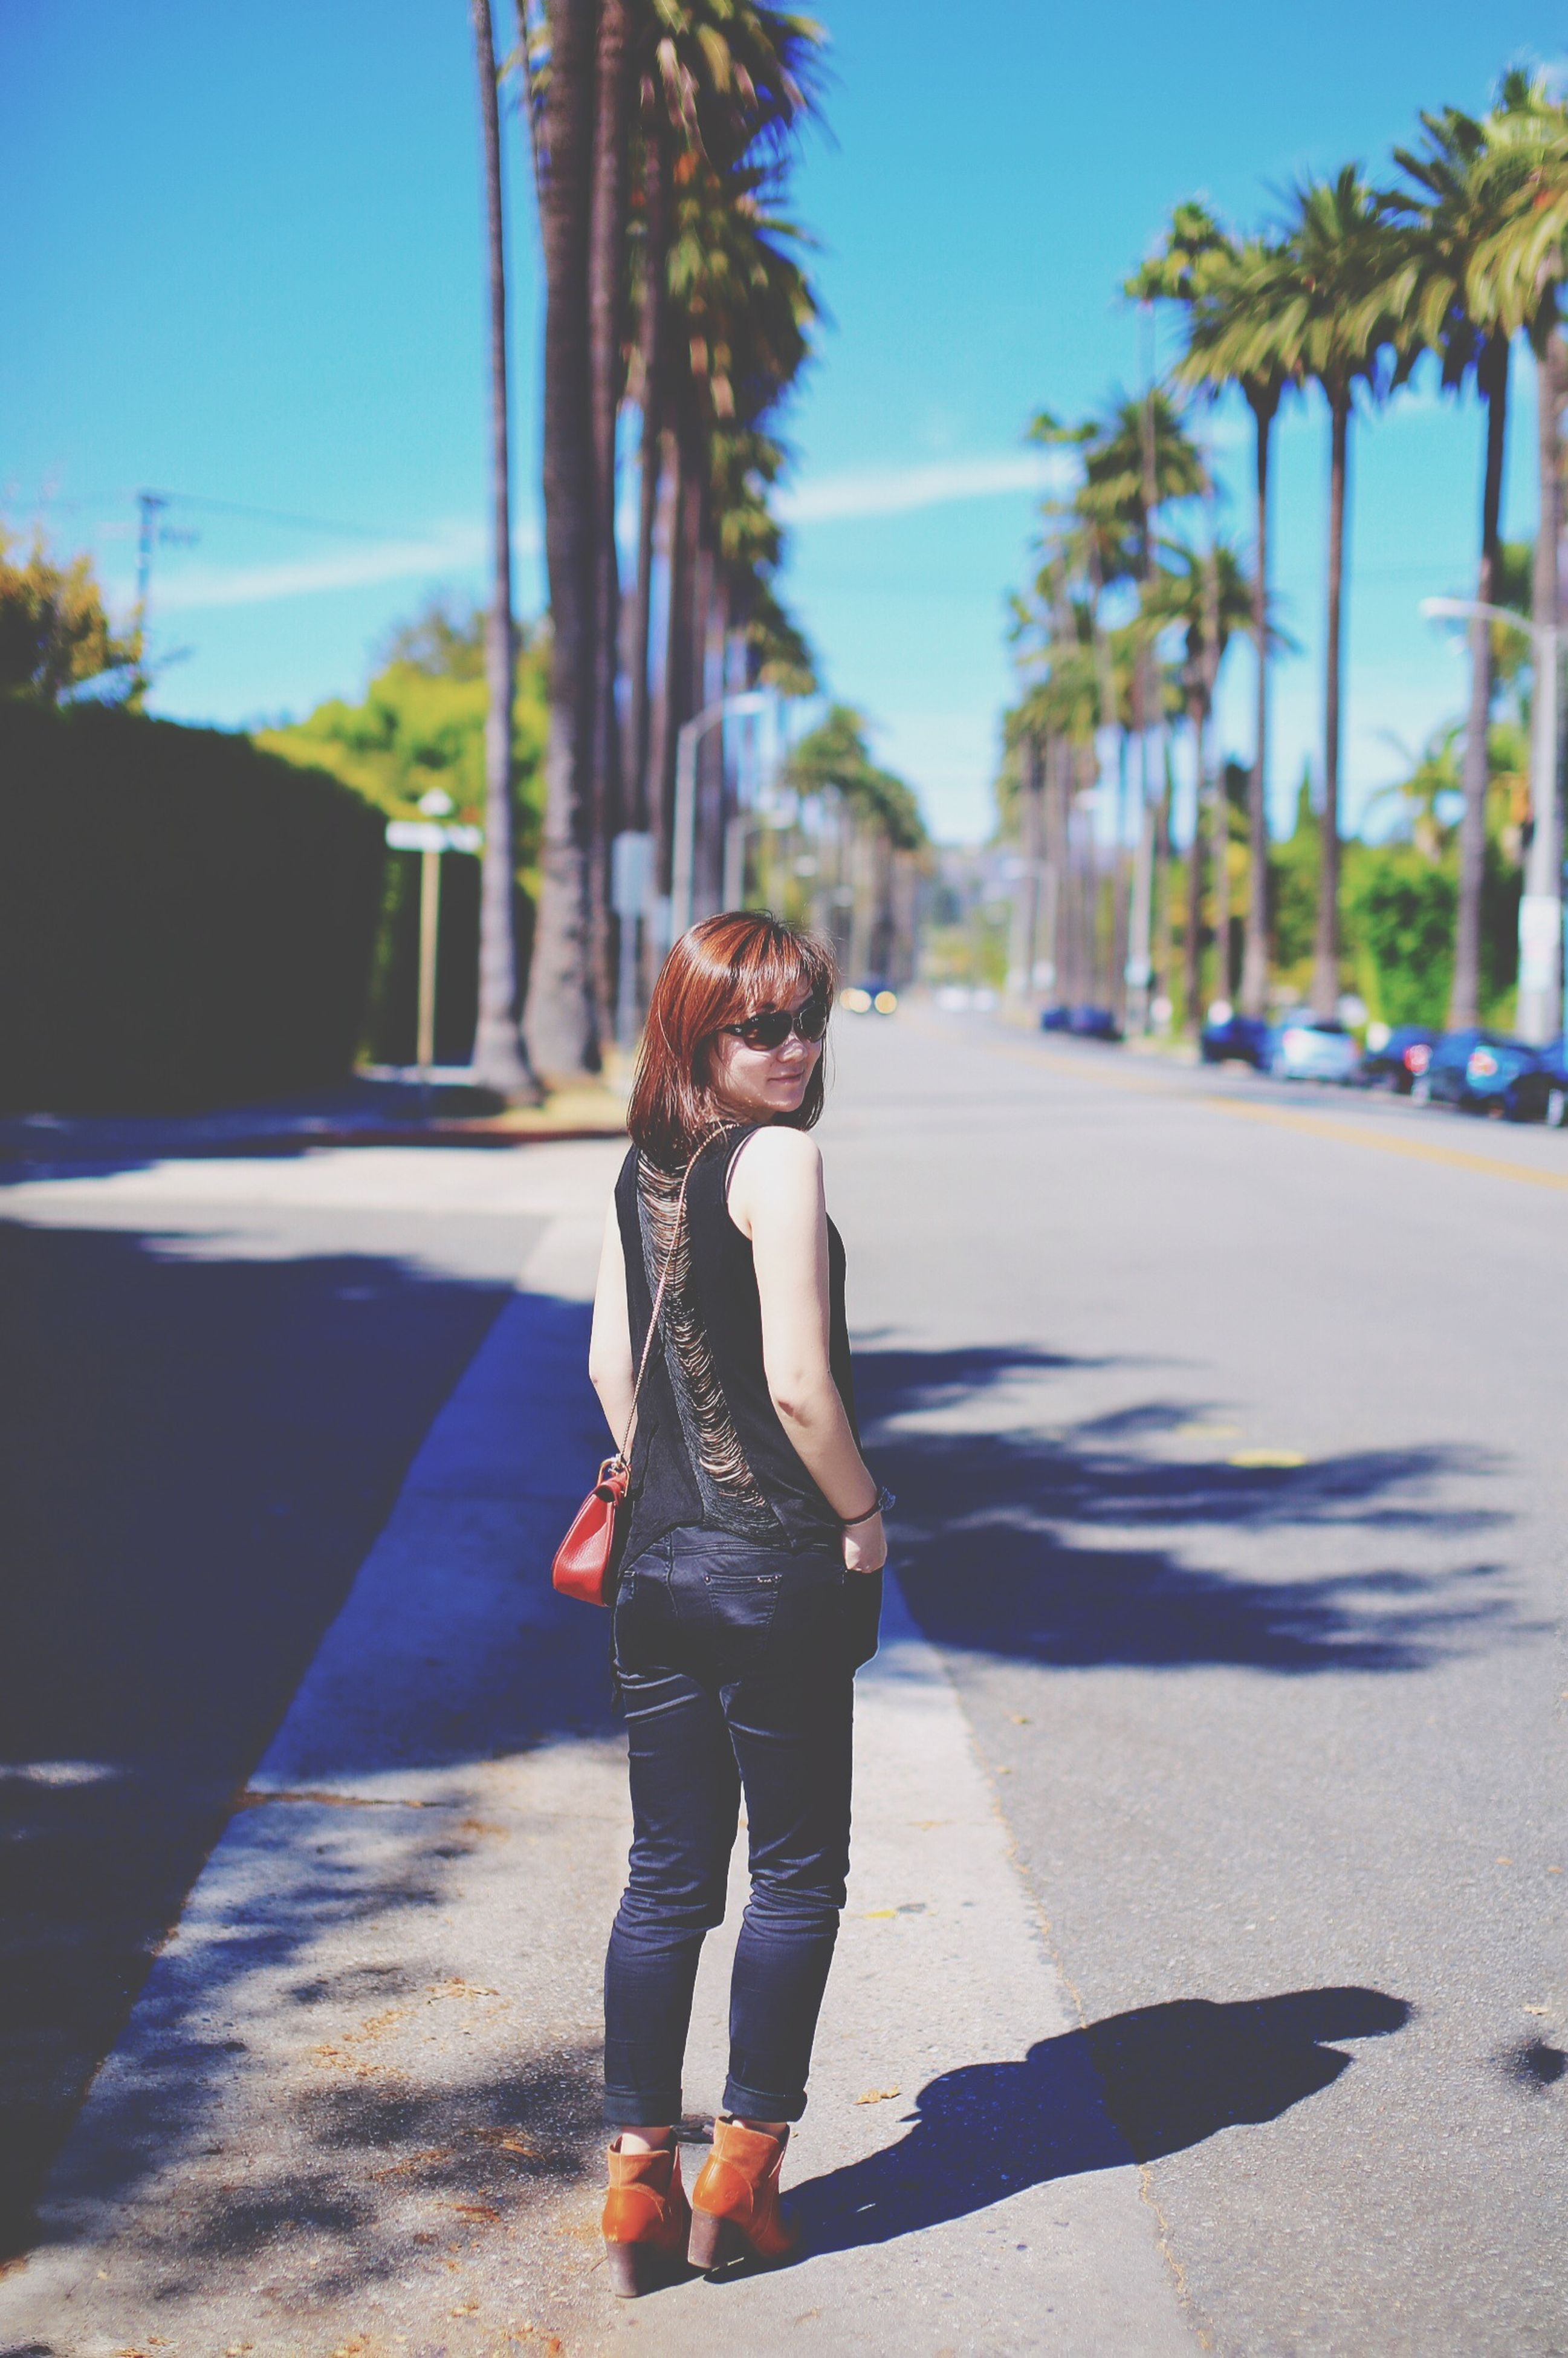 street, shadow, casual clothing, sunlight, leisure activity, road, lifestyles, sunny, transportation, focus on foreground, tree, the way forward, day, long hair, young adult, outdoors